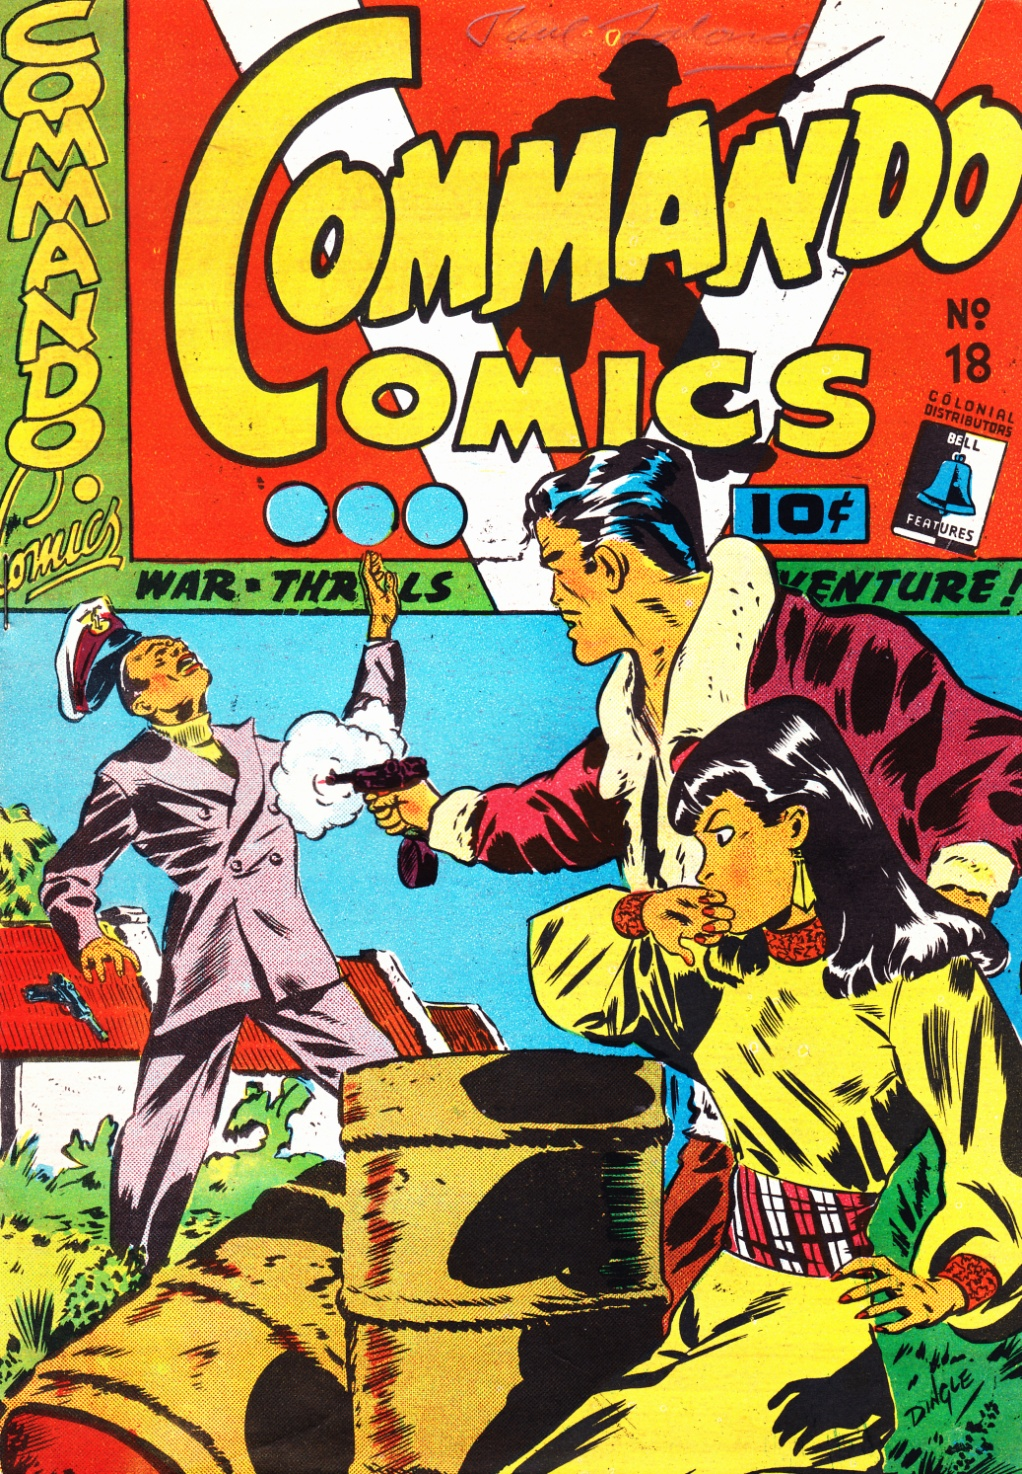 C:\Users\Robert\Documents\CARTOONING ILLUSTRATION ANIMATION\IMAGE CARTOON\IMAGE CARTOON C\CHICK TUCKER, Commando Comics, 18, fc.jpg